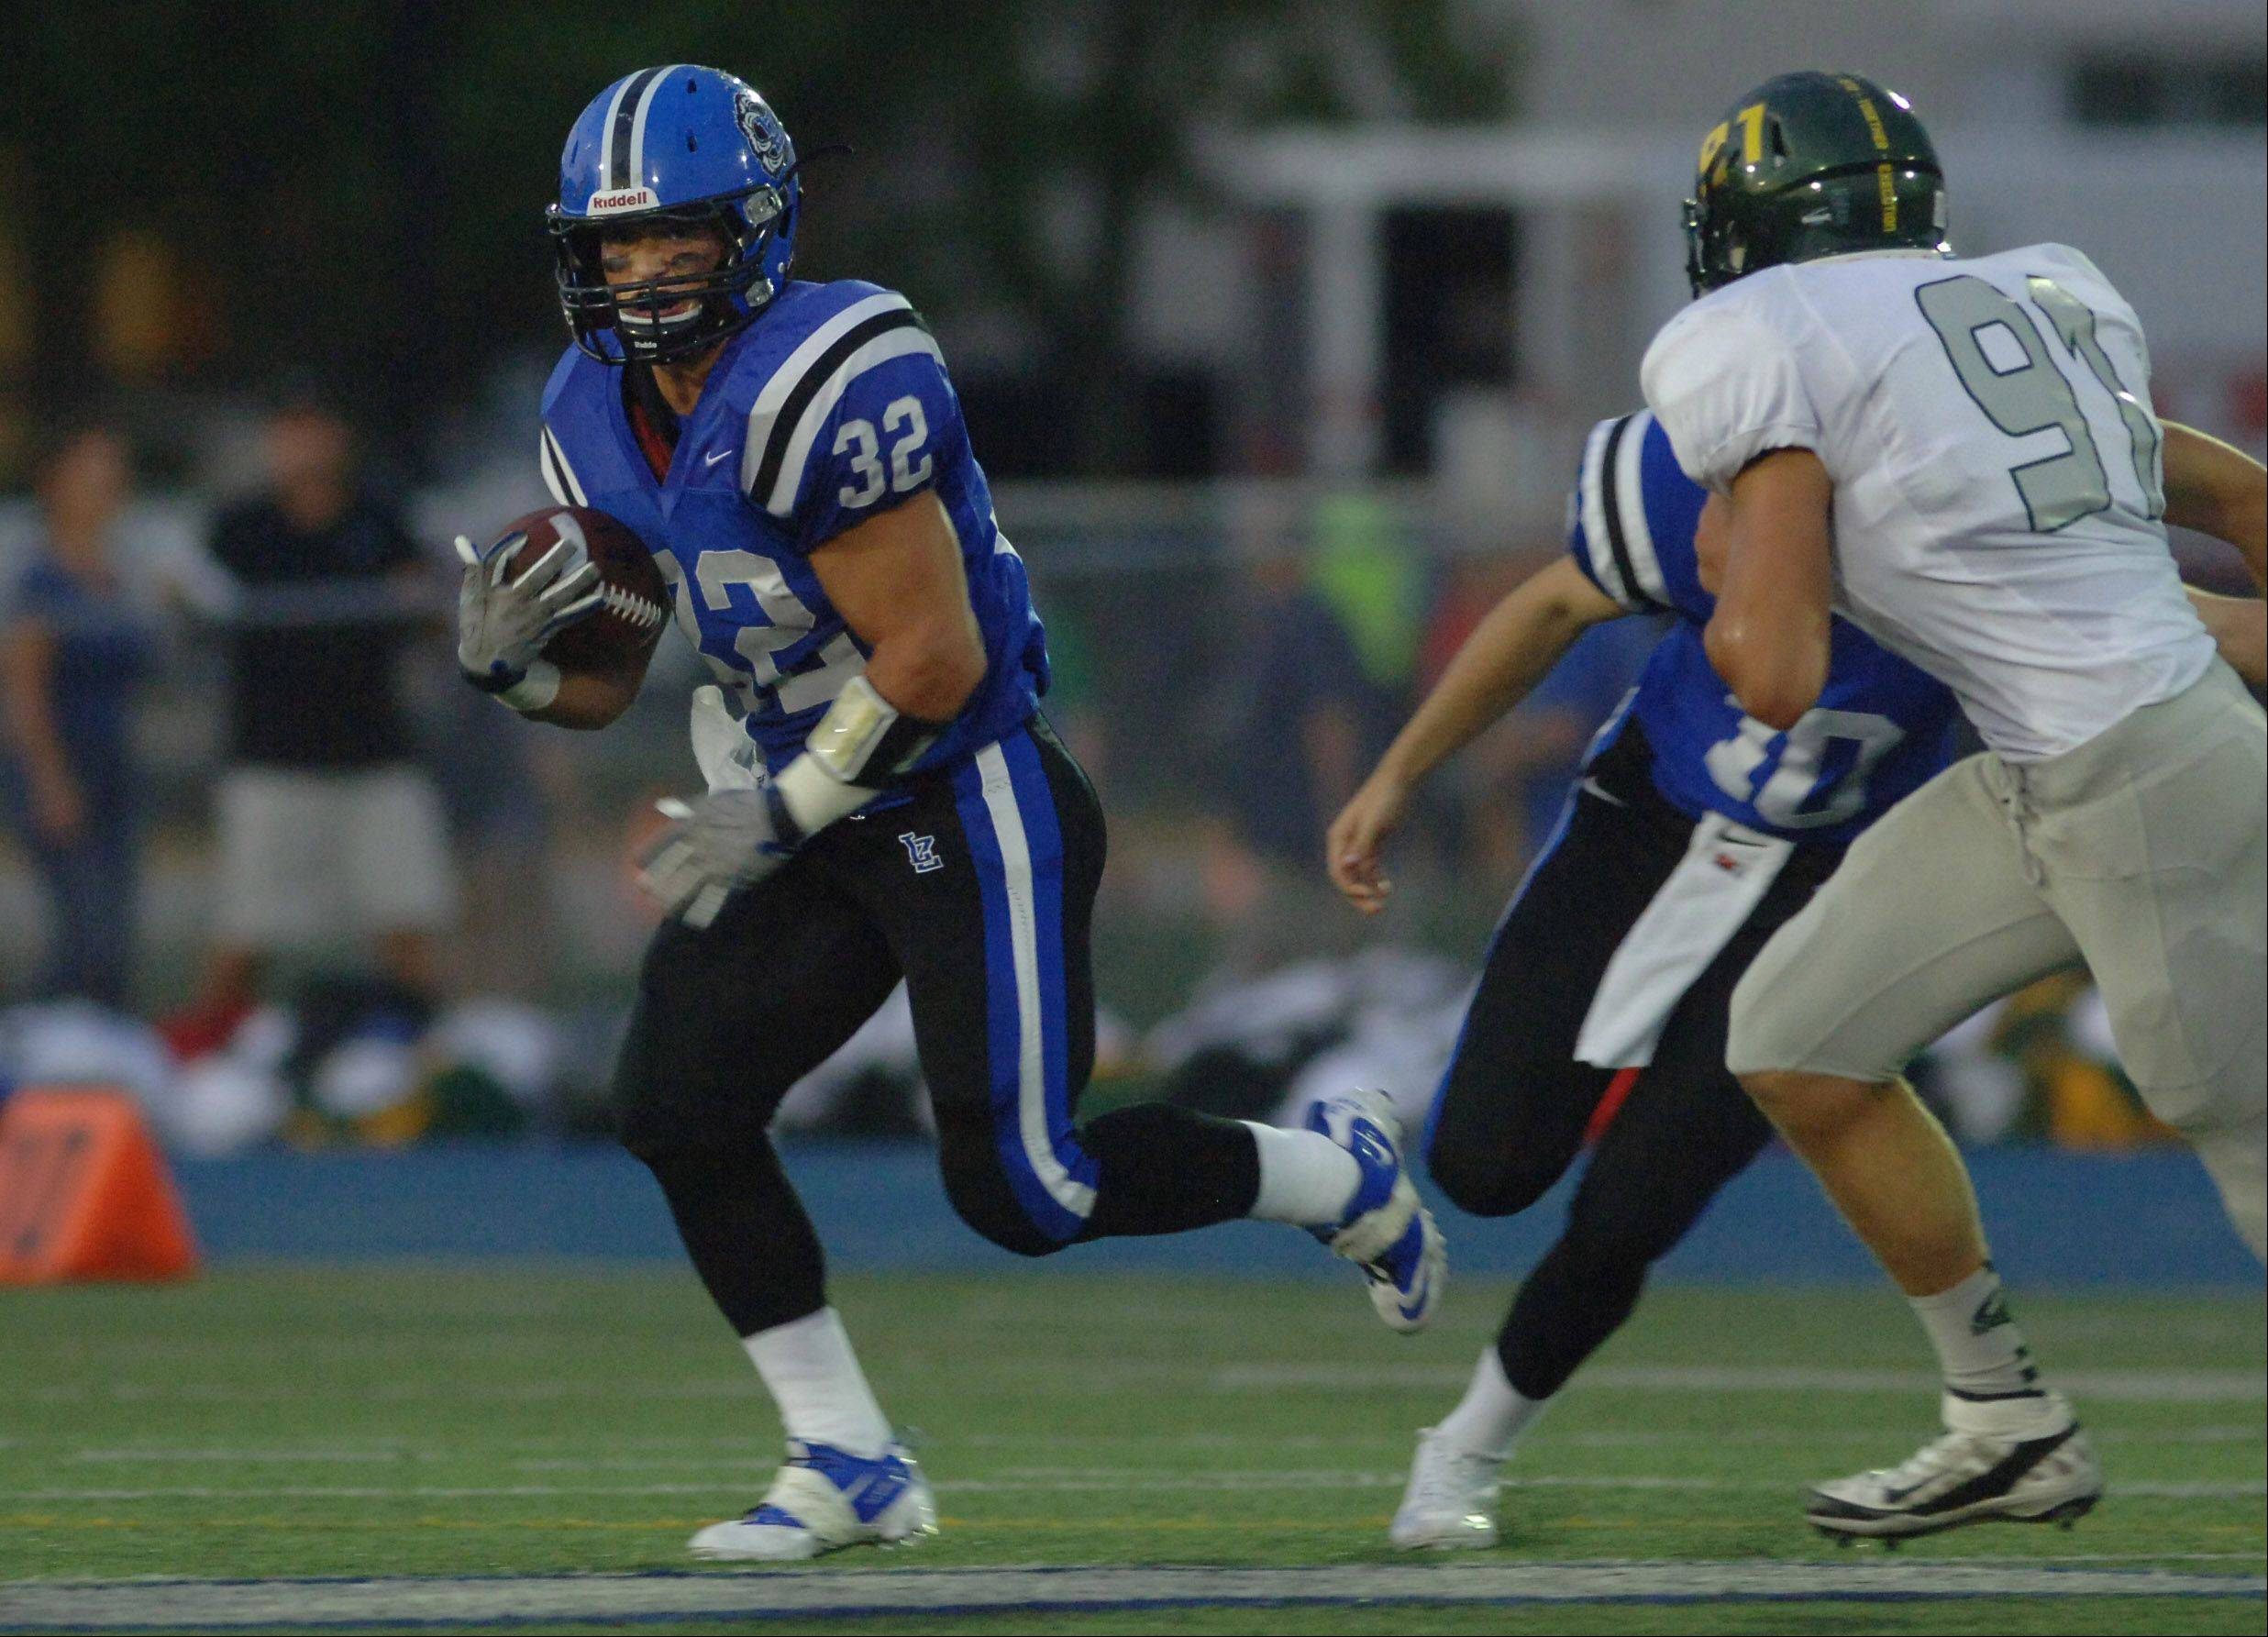 Lake Zurich's Connor Schrader finds a nice hole against Fremd on Friday night in Lake Zurich.